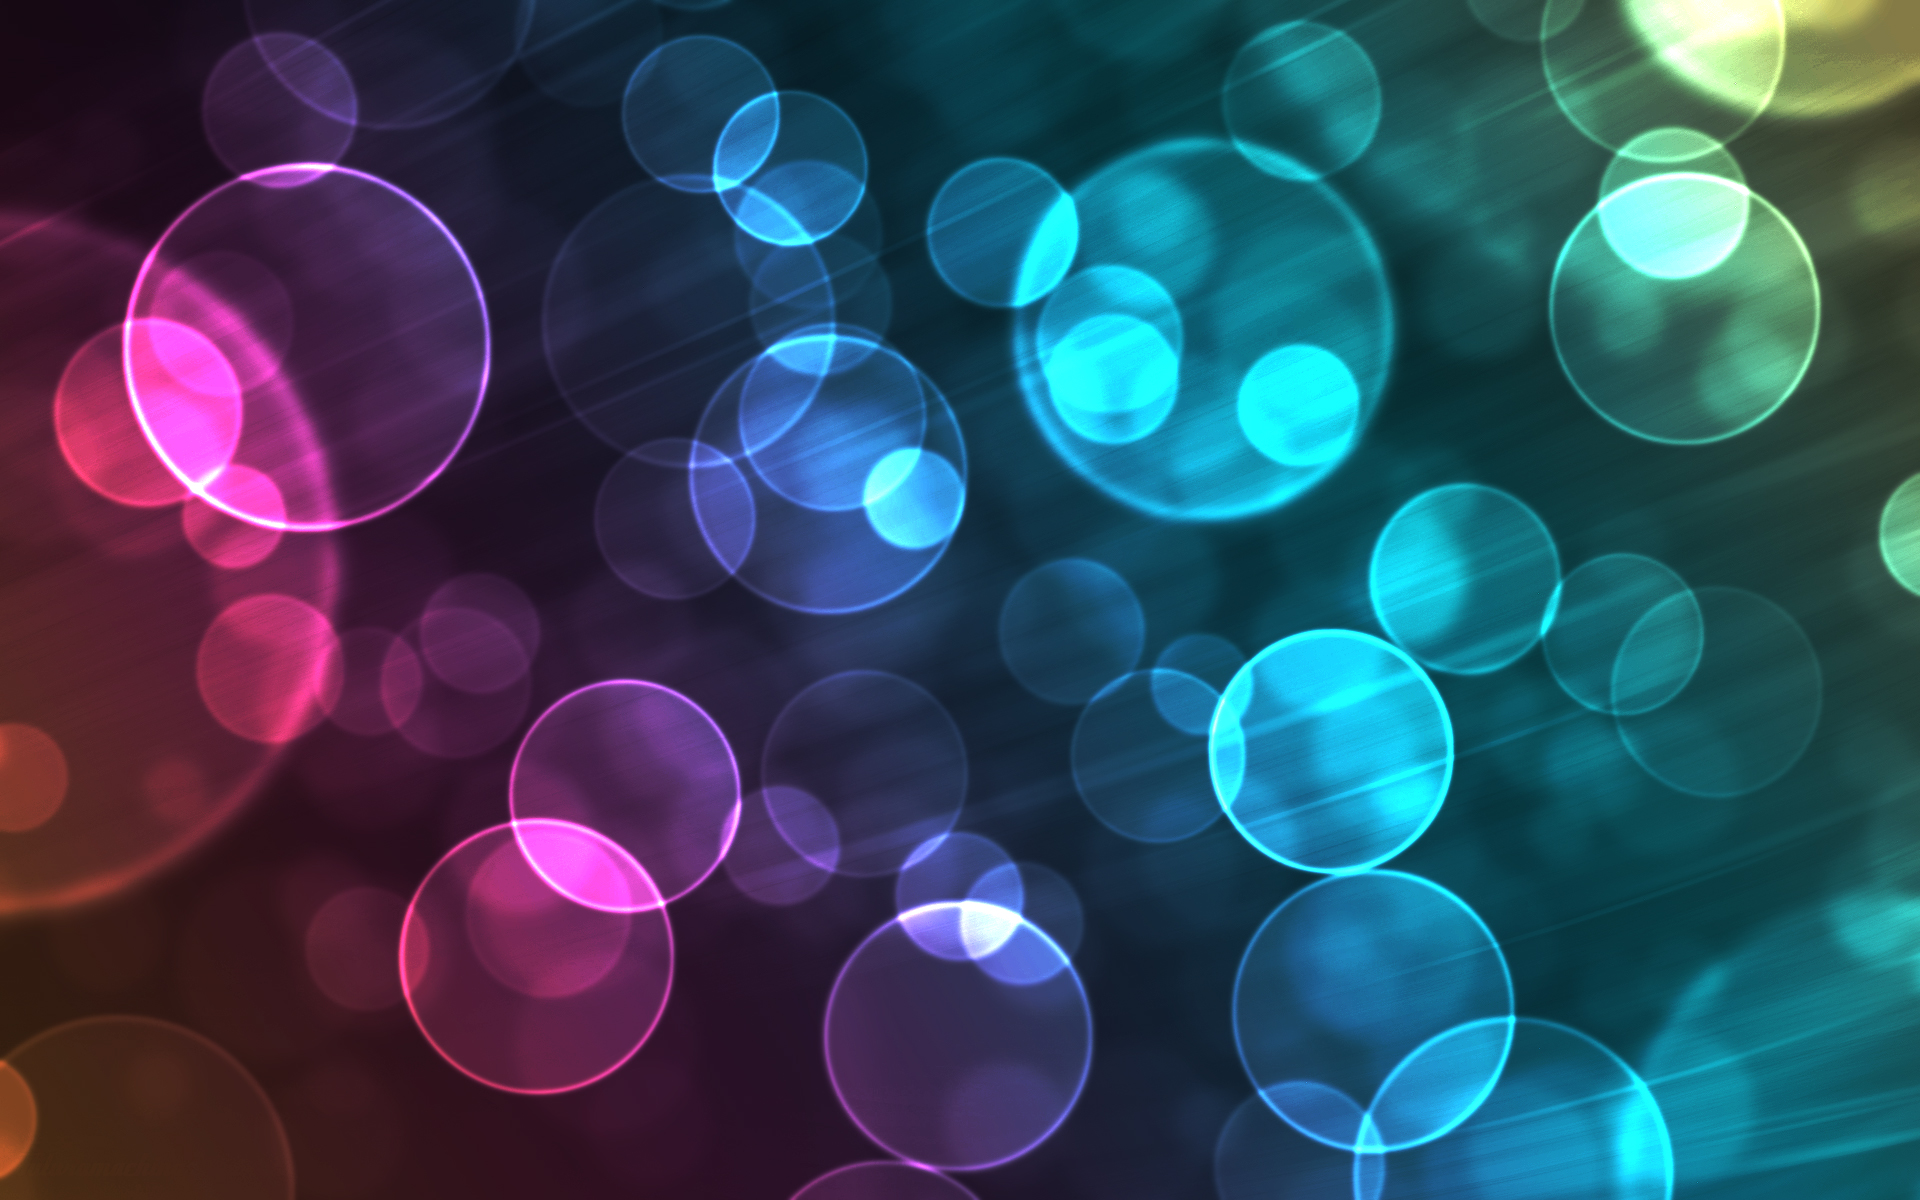 Colorful Water Bubbles Background - HD Wallpaper